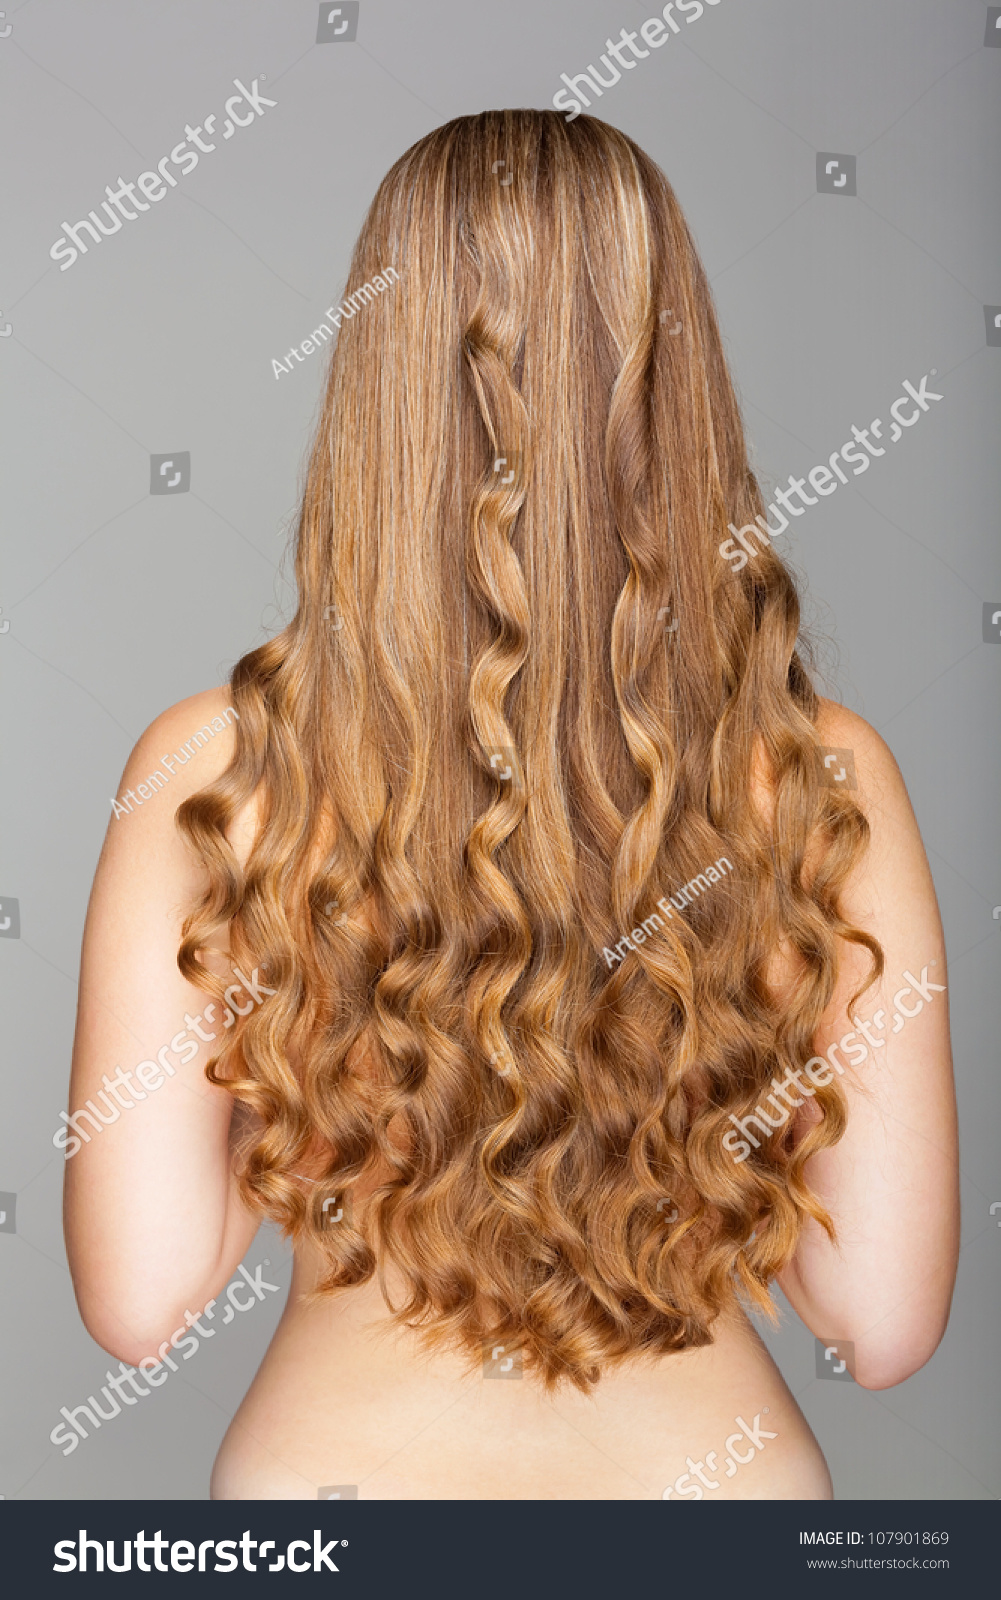 beautiful long wavy hair back view stock photo 107901869